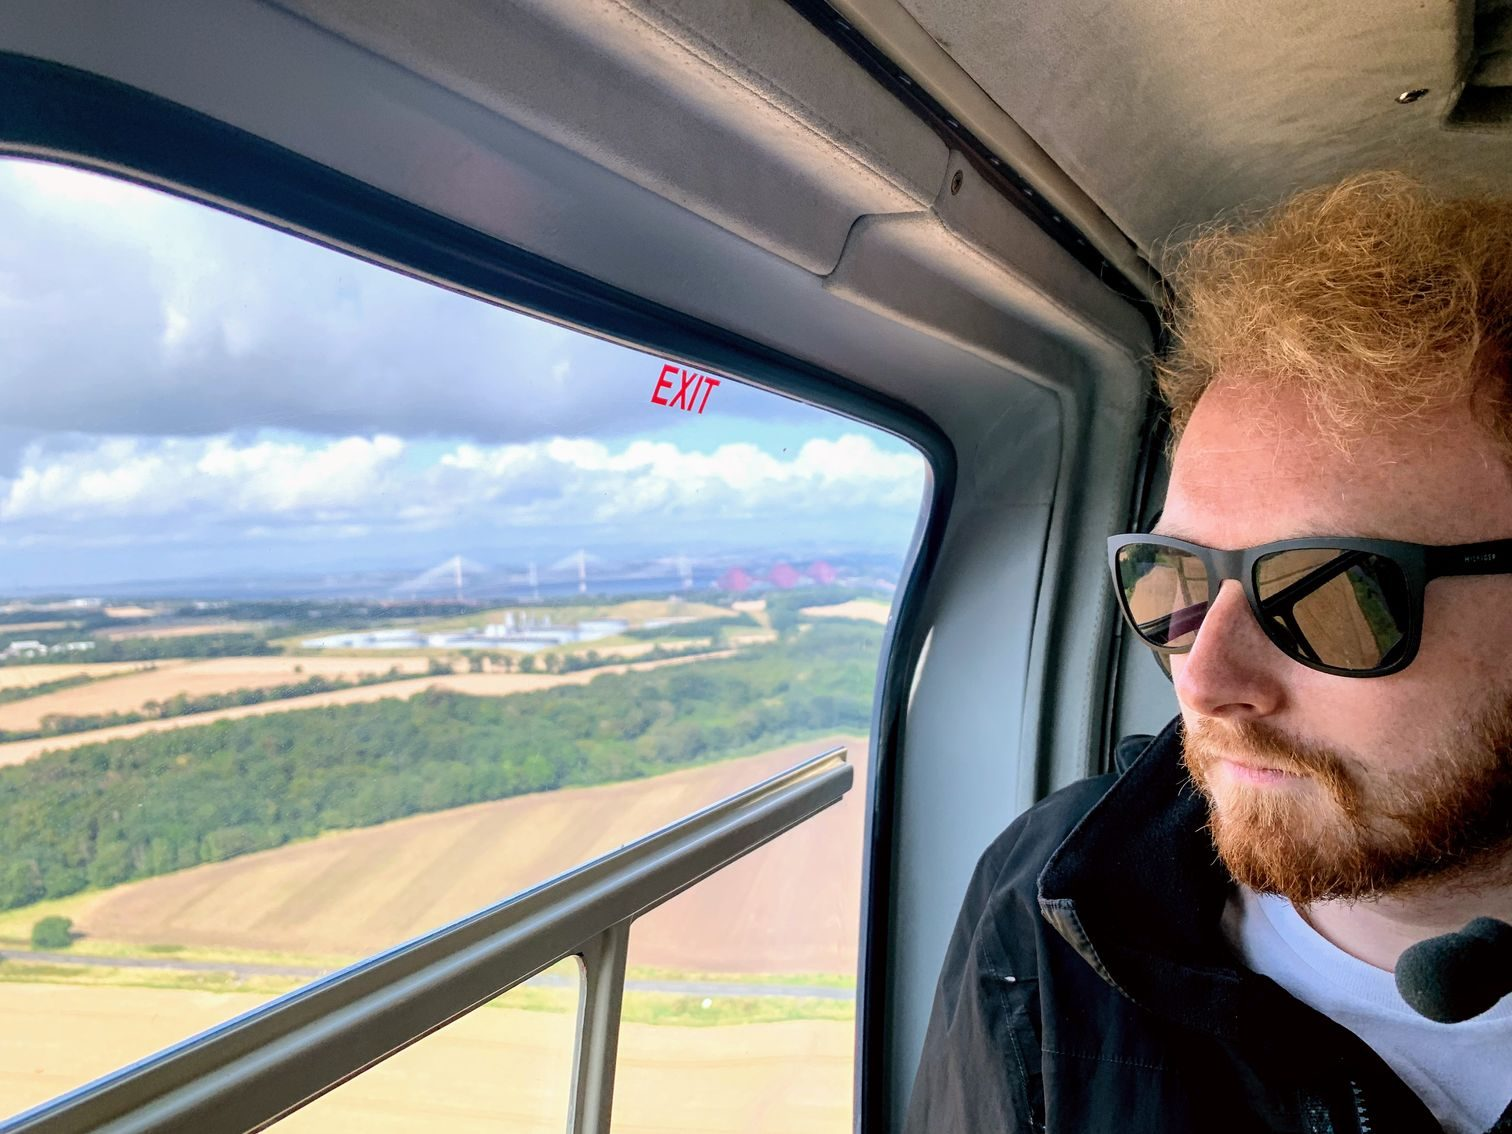 Me looking out the helicopter with the Forth bridges in the background